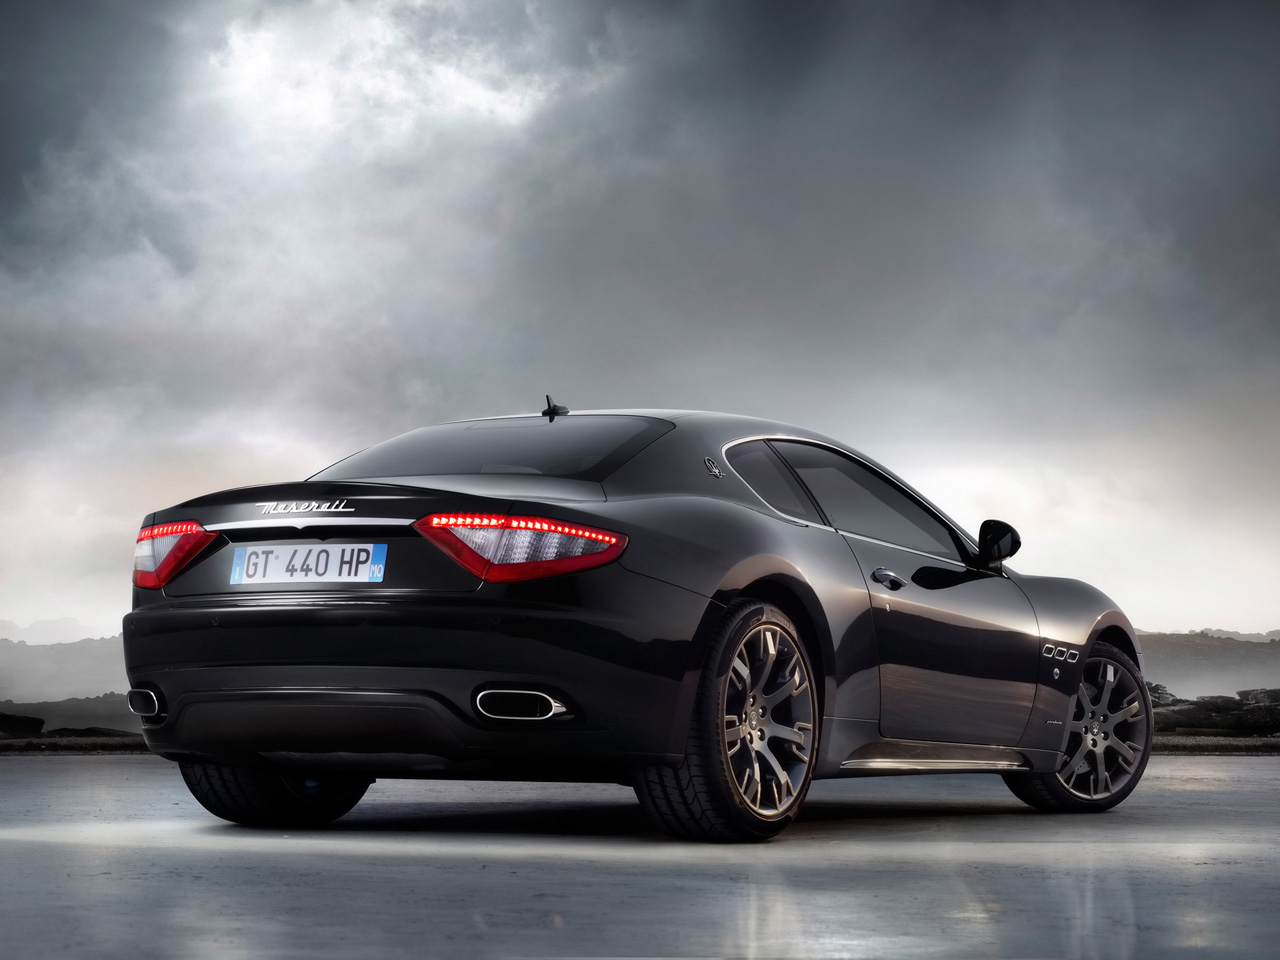 Most Expensive Mercedes >> World Of Cars: Maserati granturismo